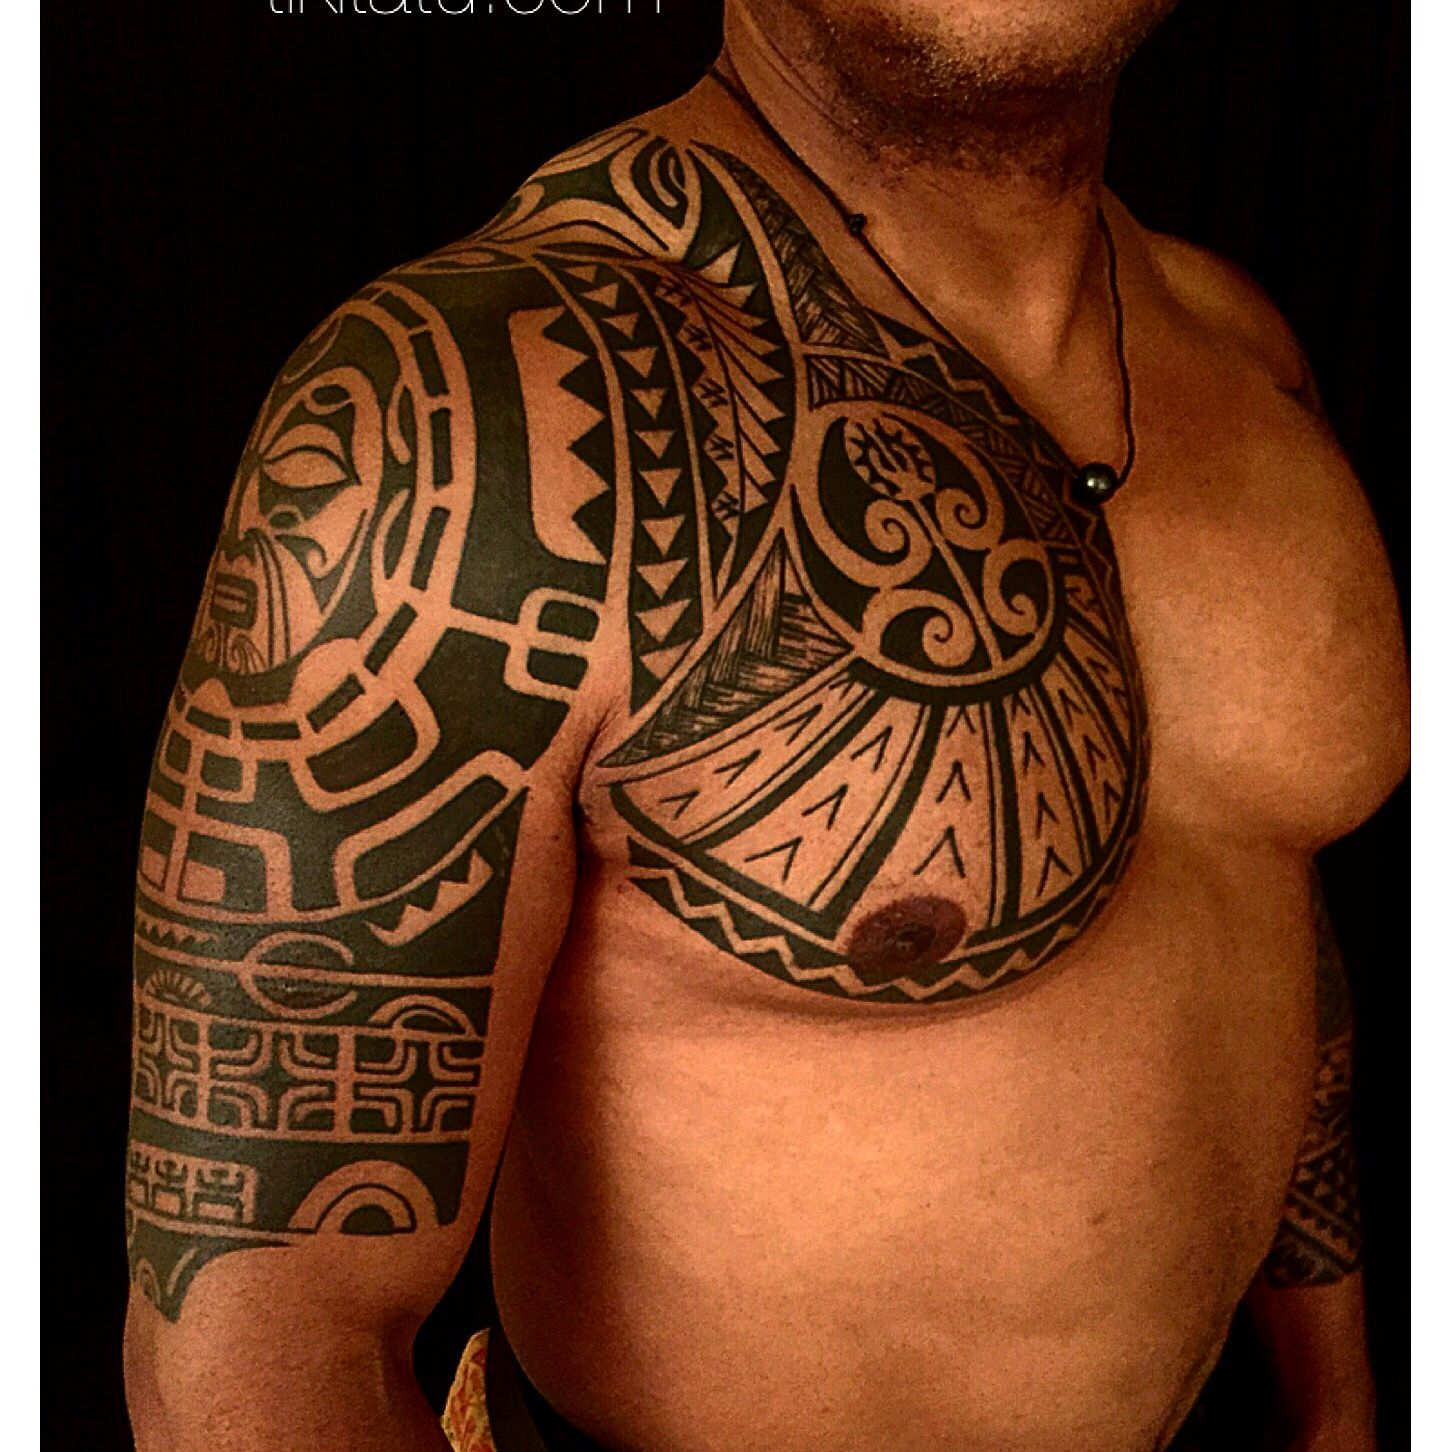 Body Art World Tattoos Maori Tattoo Art And Traditional: Pin By Beautiful Tattoos And More On Maori Tattoos